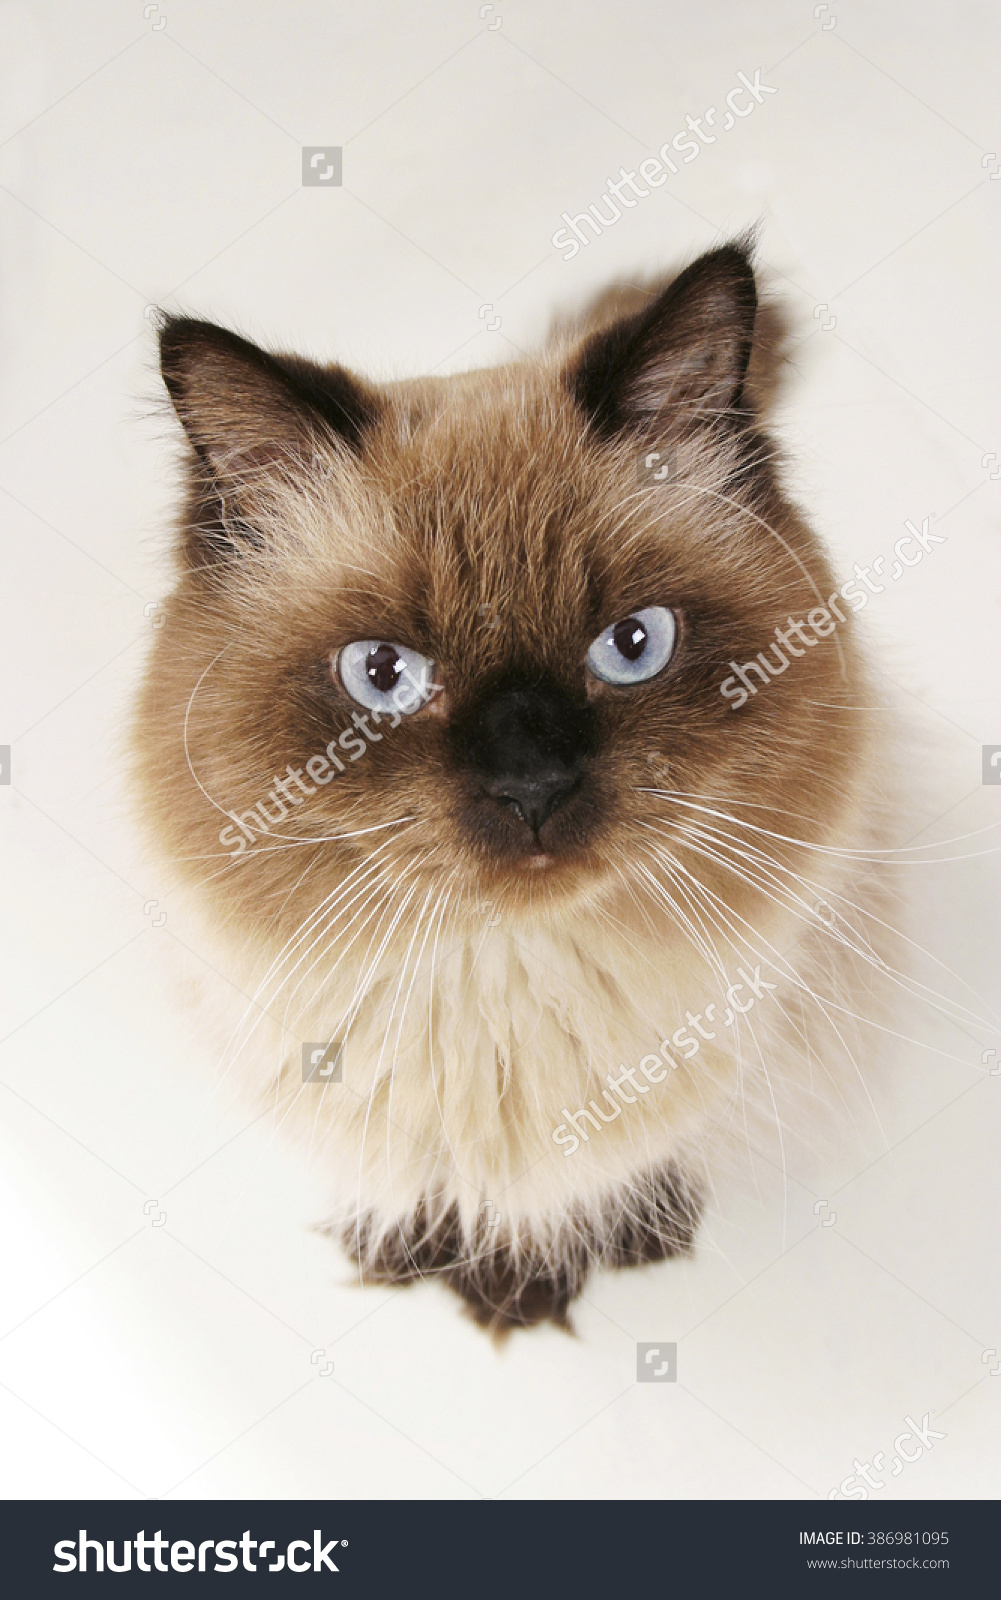 Himalayan Cat clipart #17, Download drawings